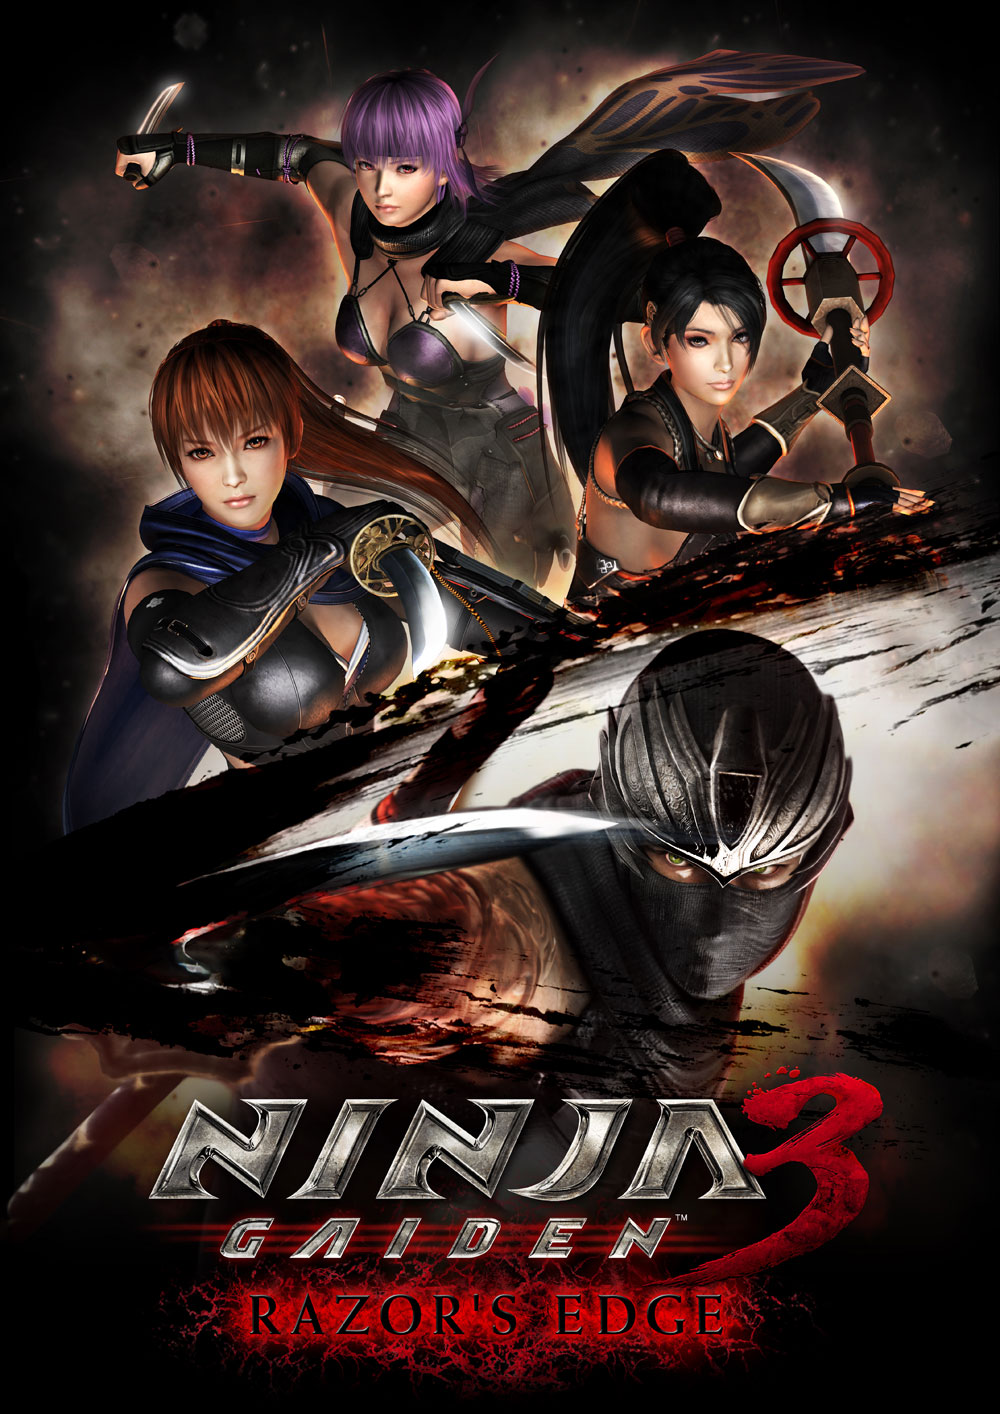 Ninja Gaiden 3 Razer S Edge Demo Impressions Gameplay Breakdown